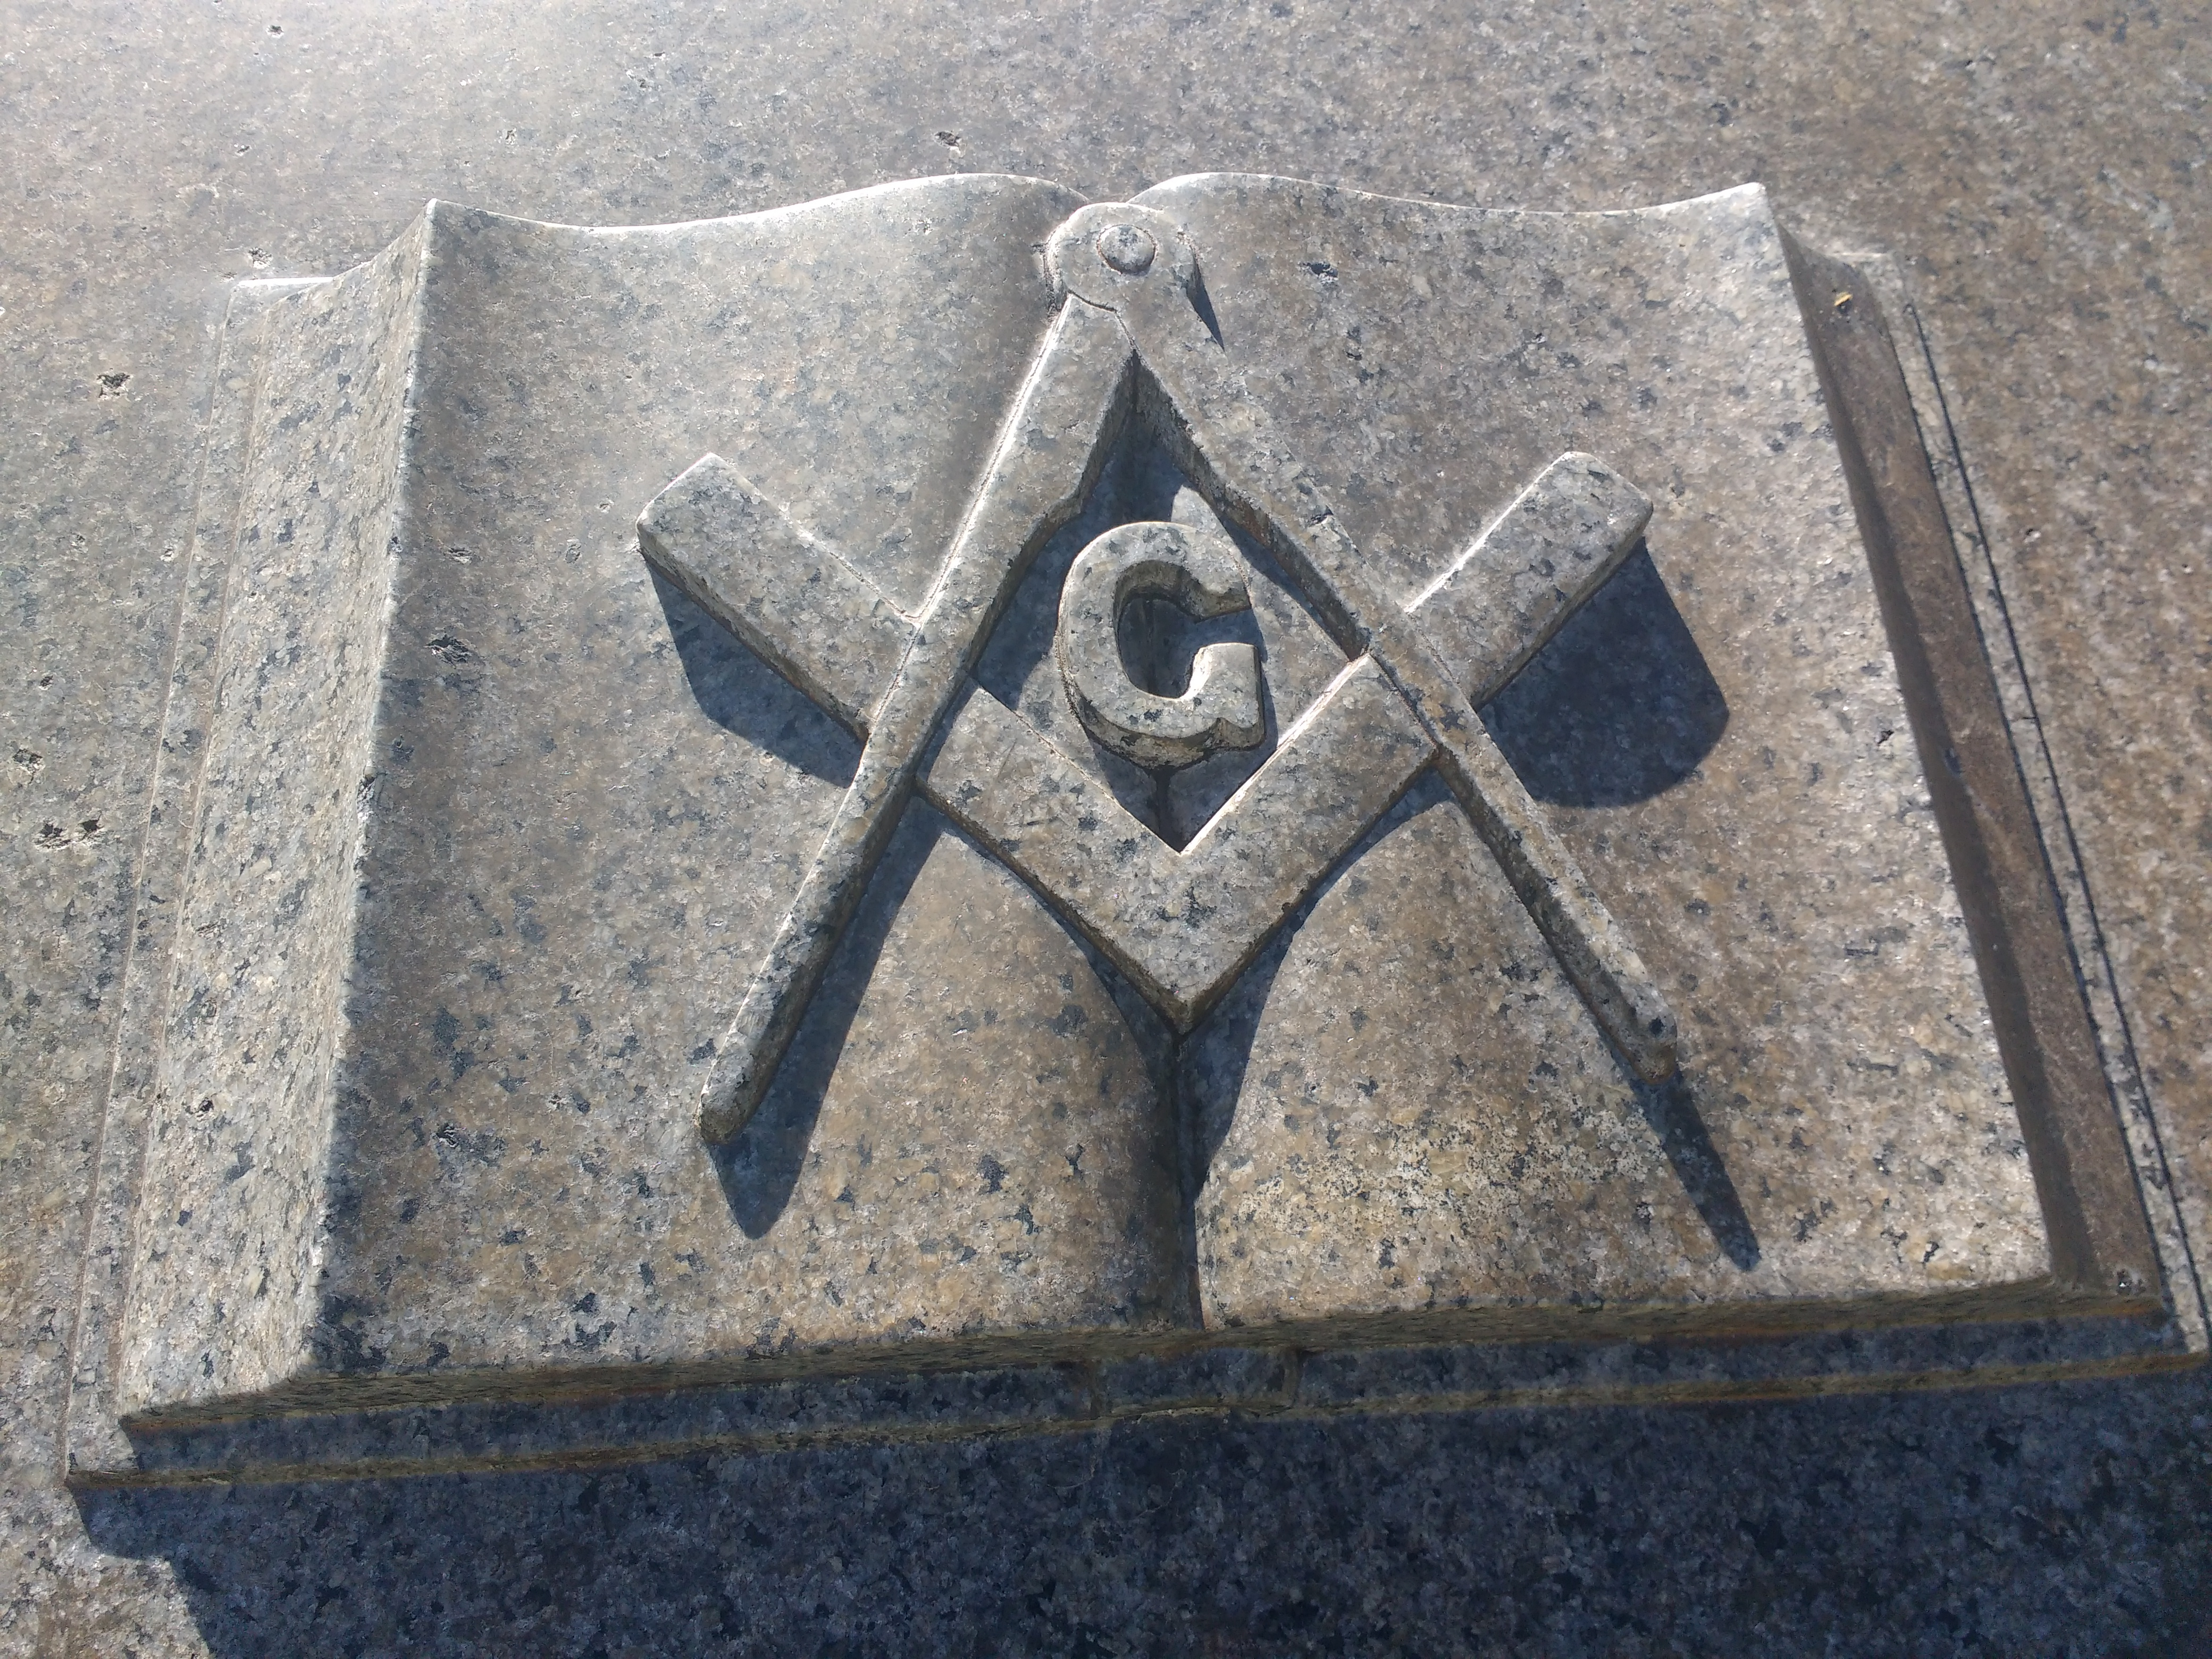 Free mason symbol granite picture free photograph photos click here to download full resolution image biocorpaavc